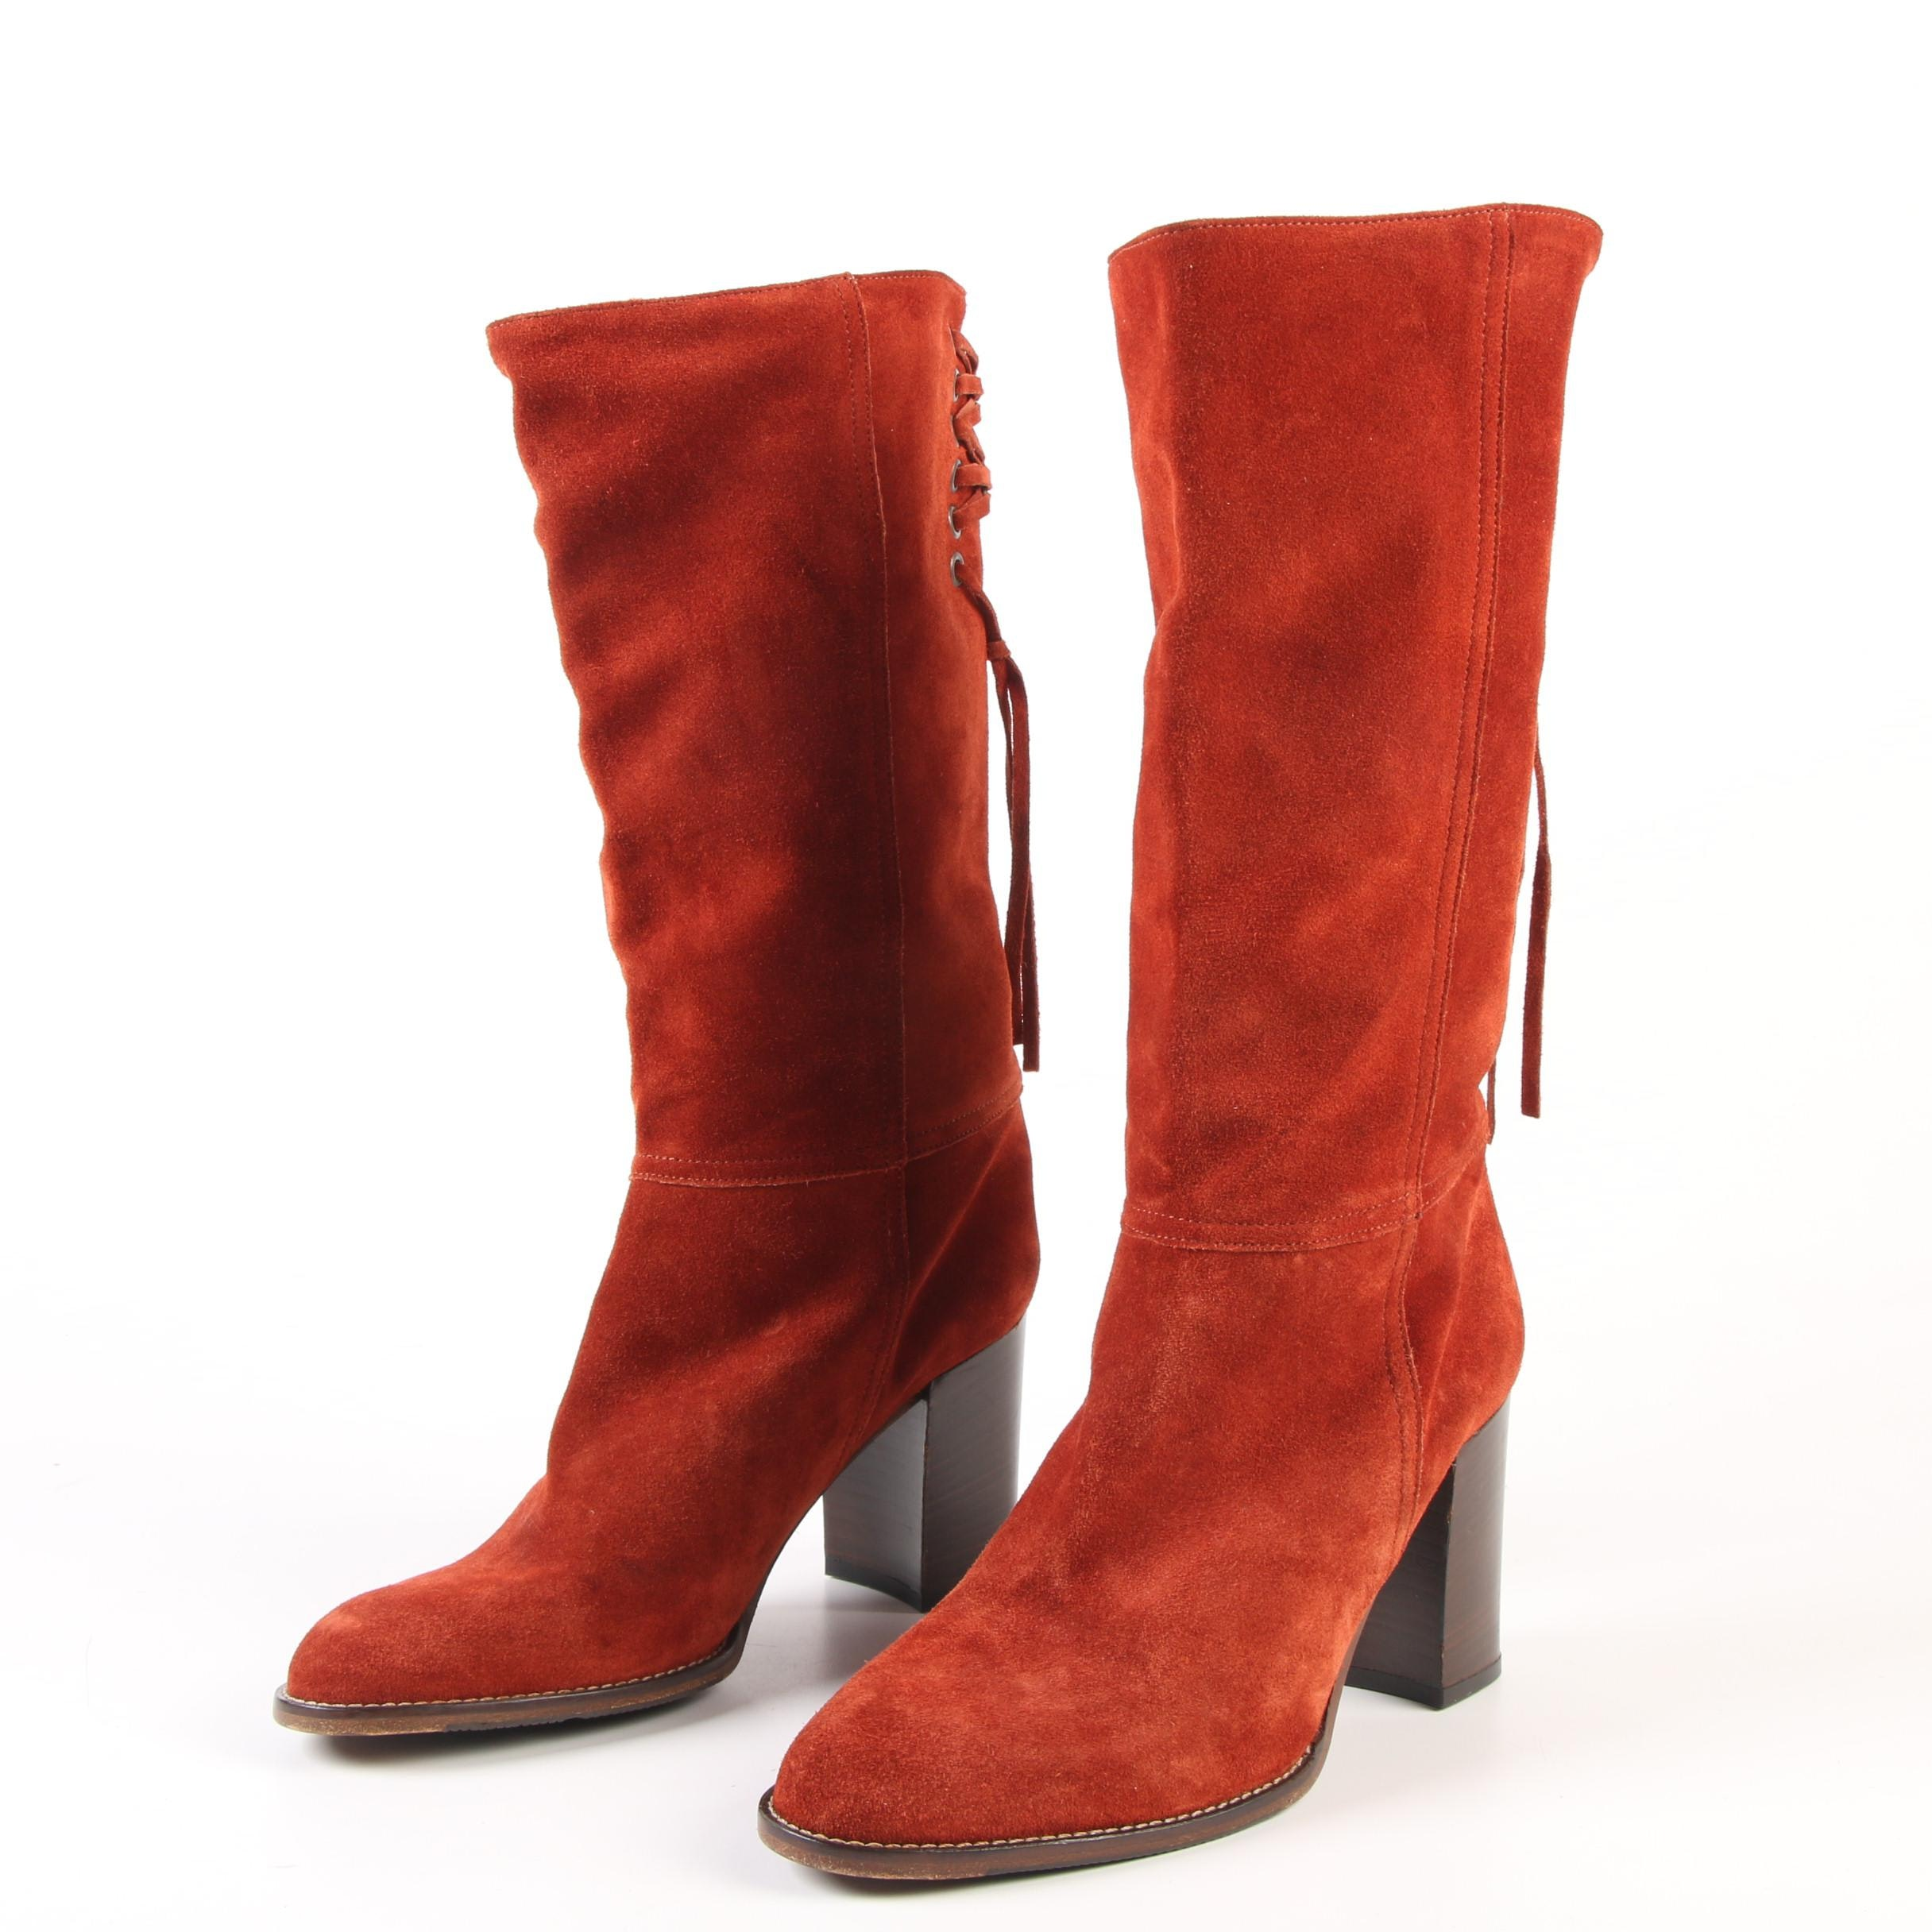 Coach Coty High Heel Boots in Rust Suede with Lacing Detail